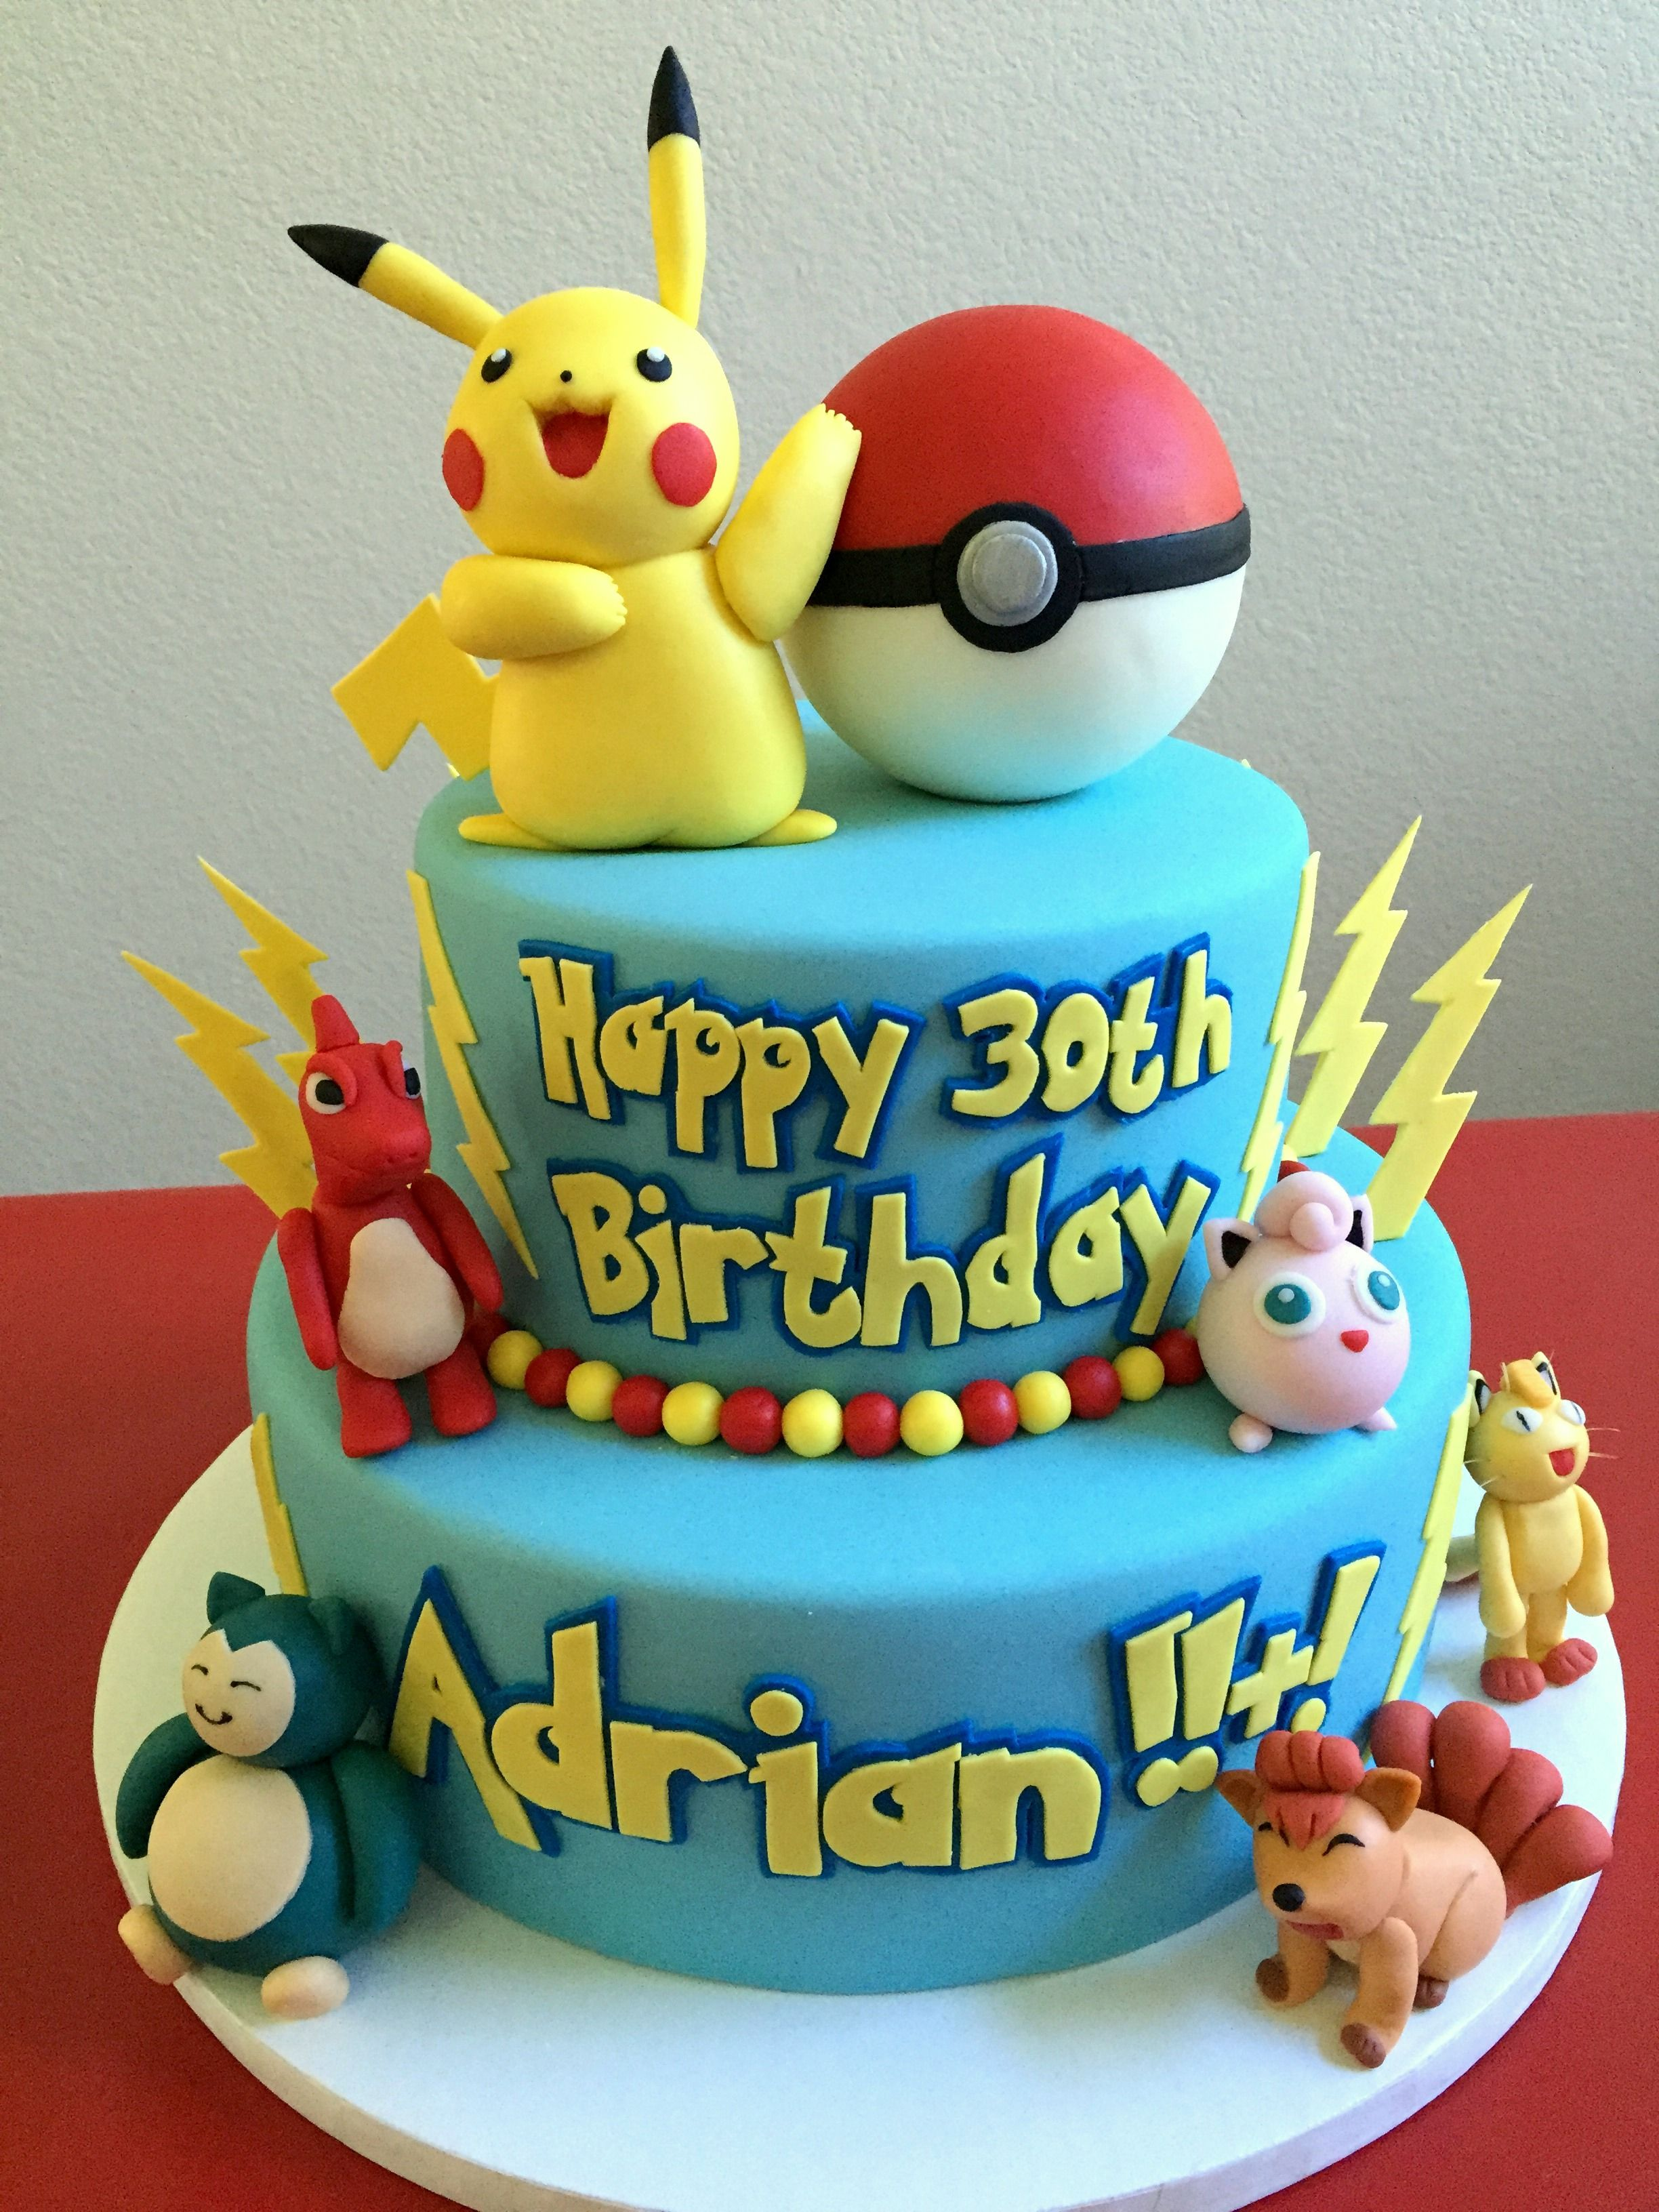 Httpcaketalkbloggerspot201701the Pokemon Pikachu Cake